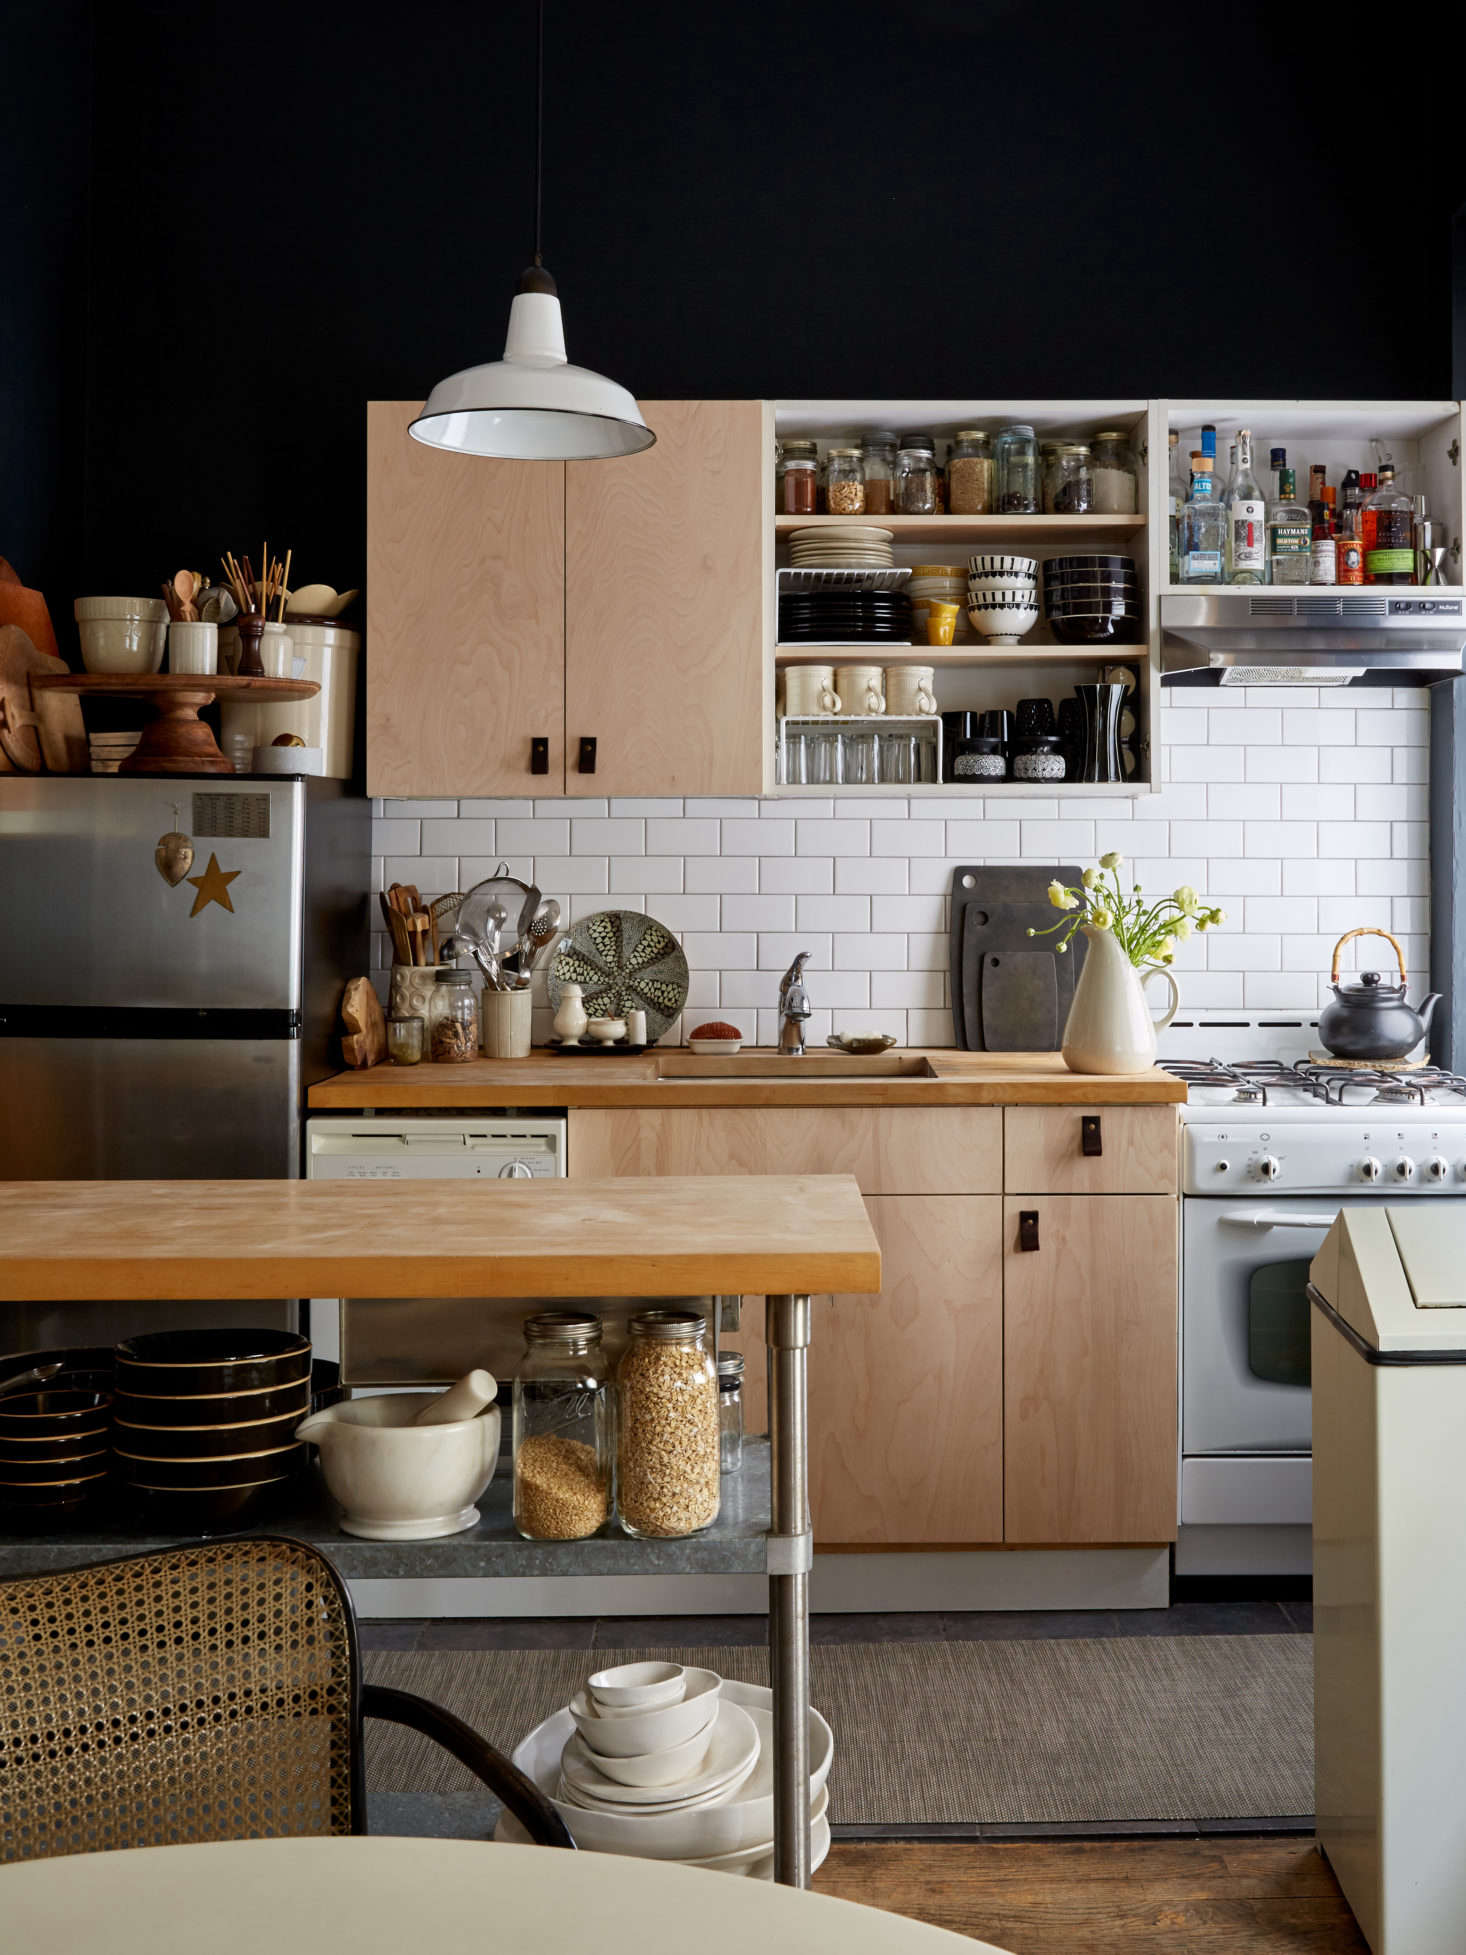 Remodeling 101: What to Know About Installing Kitchen Cabinets and on 1955 kitchen appliances, 1955 kitchen trim, refinishing oak cabinets, 1955 kitchen tiles, 1955 kitchen antiques, 1955 kitchen makeover, 1955 kitchen wallpaper, 1955 kitchen tables, 1955 kitchen stoves,